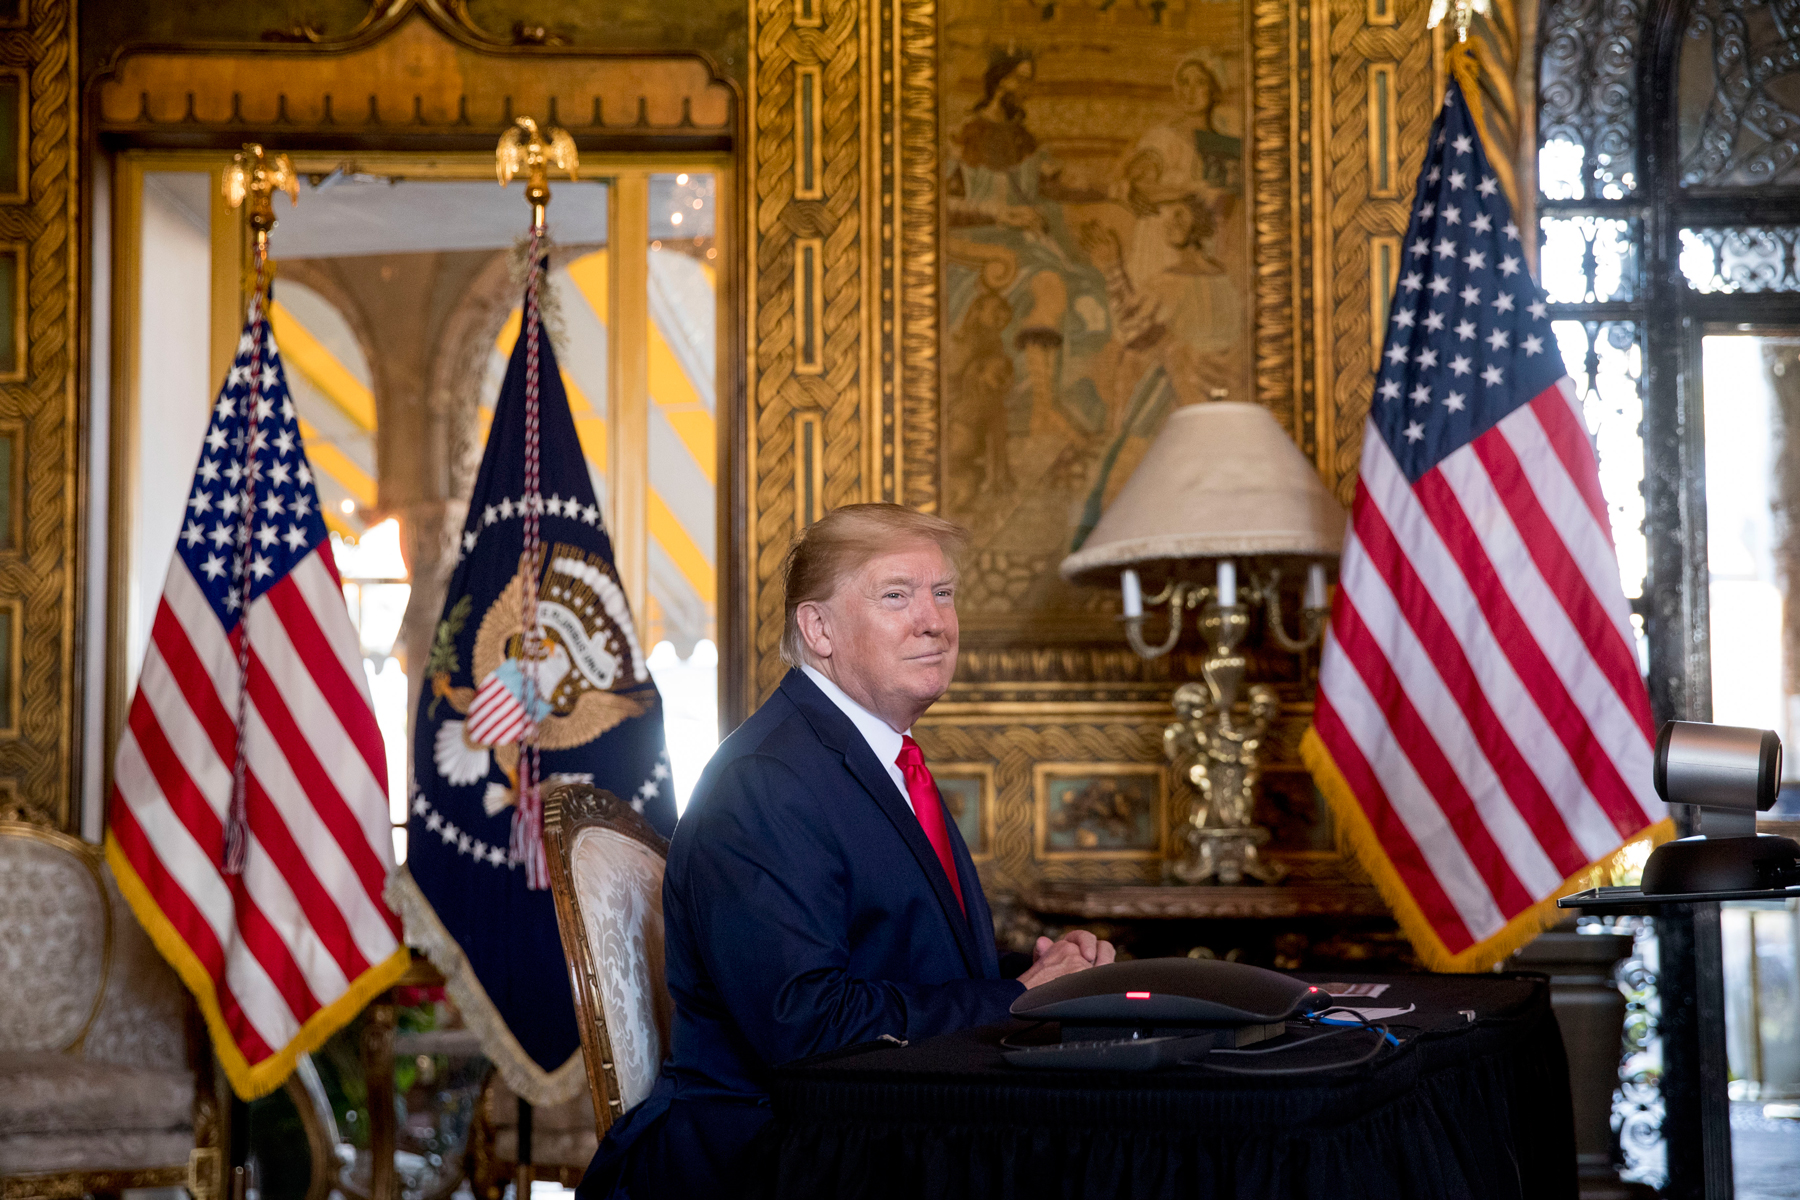 President Donald Trump looks towards members of the media as he speaks during a Christmas Eve video teleconference with members of the military at his Mar-a-Lago estate in Palm Beach, Fla., Tuesday, Dec. 24, 2019. (AP Photo/Andrew Harnik)